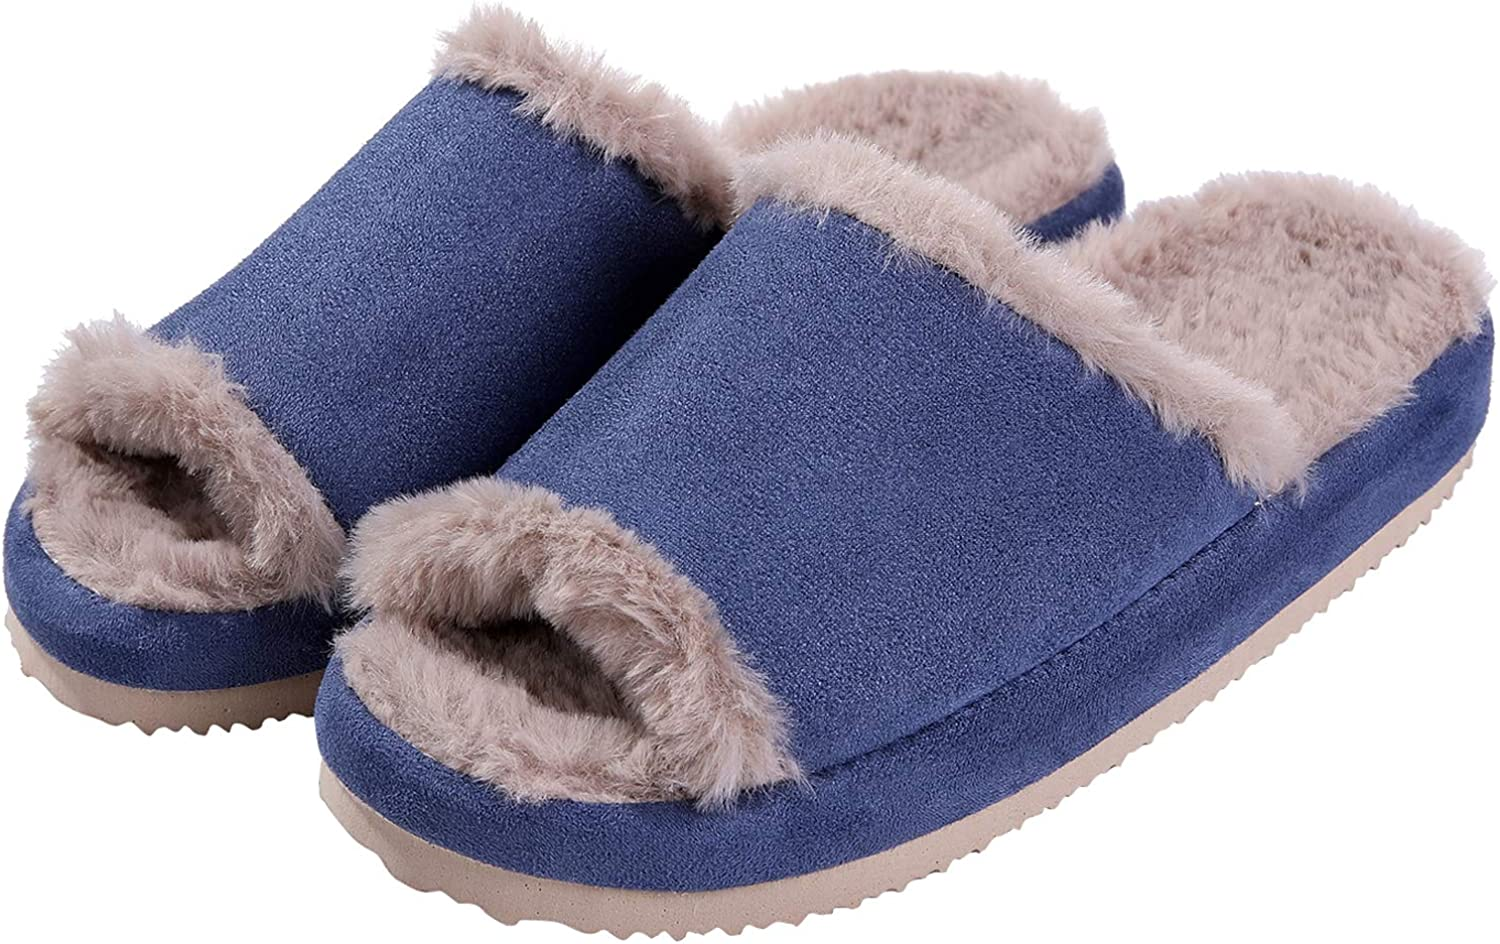 Fuzzy House Slippers for Women Faux Fur Peep Toe Indoor Winter Slippers